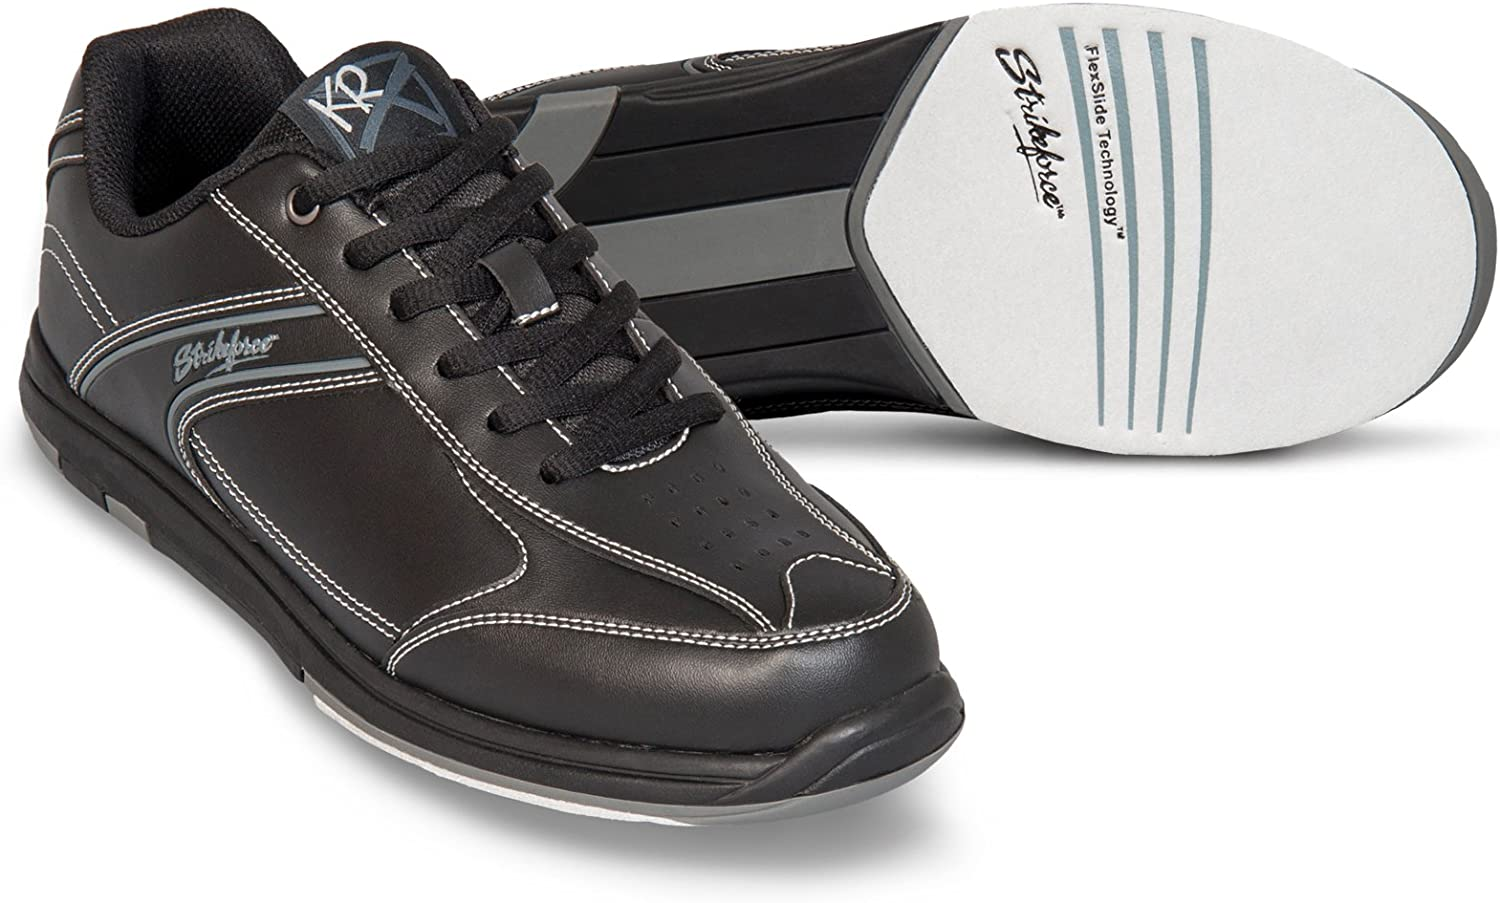 KR Strikeforce M-030-070 Flyer Bowling shoes, Black, Size 7